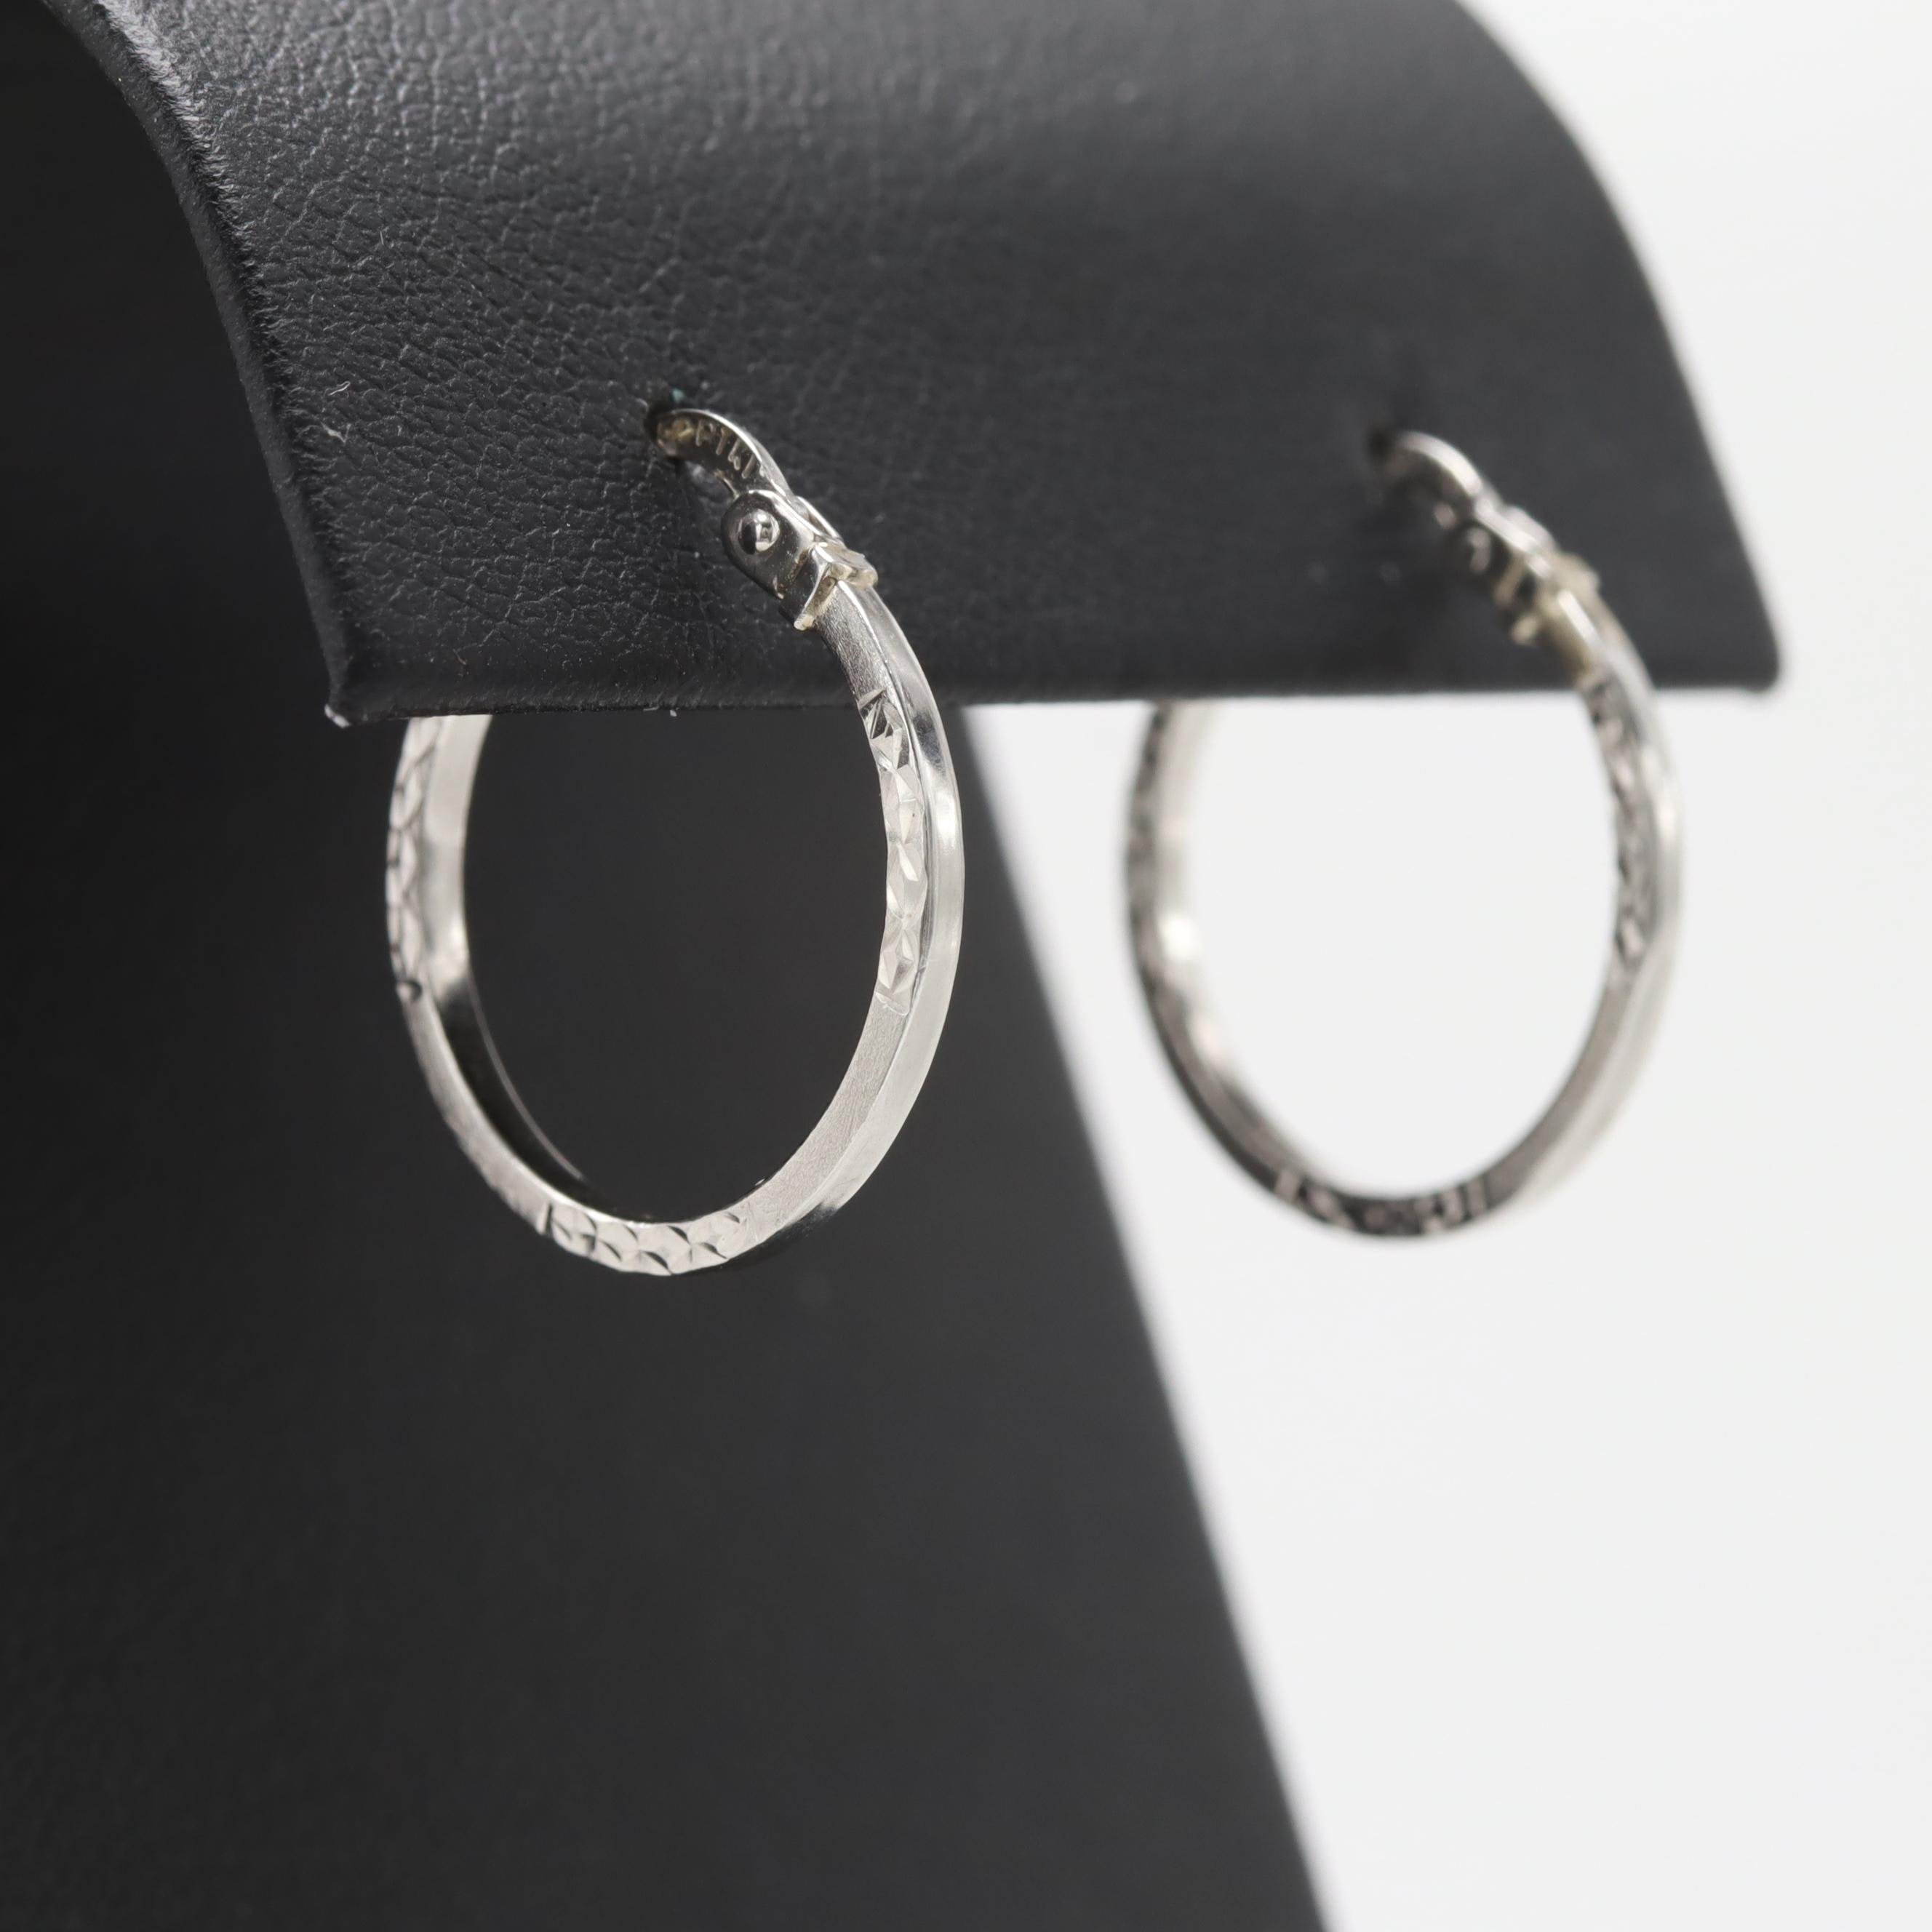 Platinum Hoop Earrings with Textured Accents